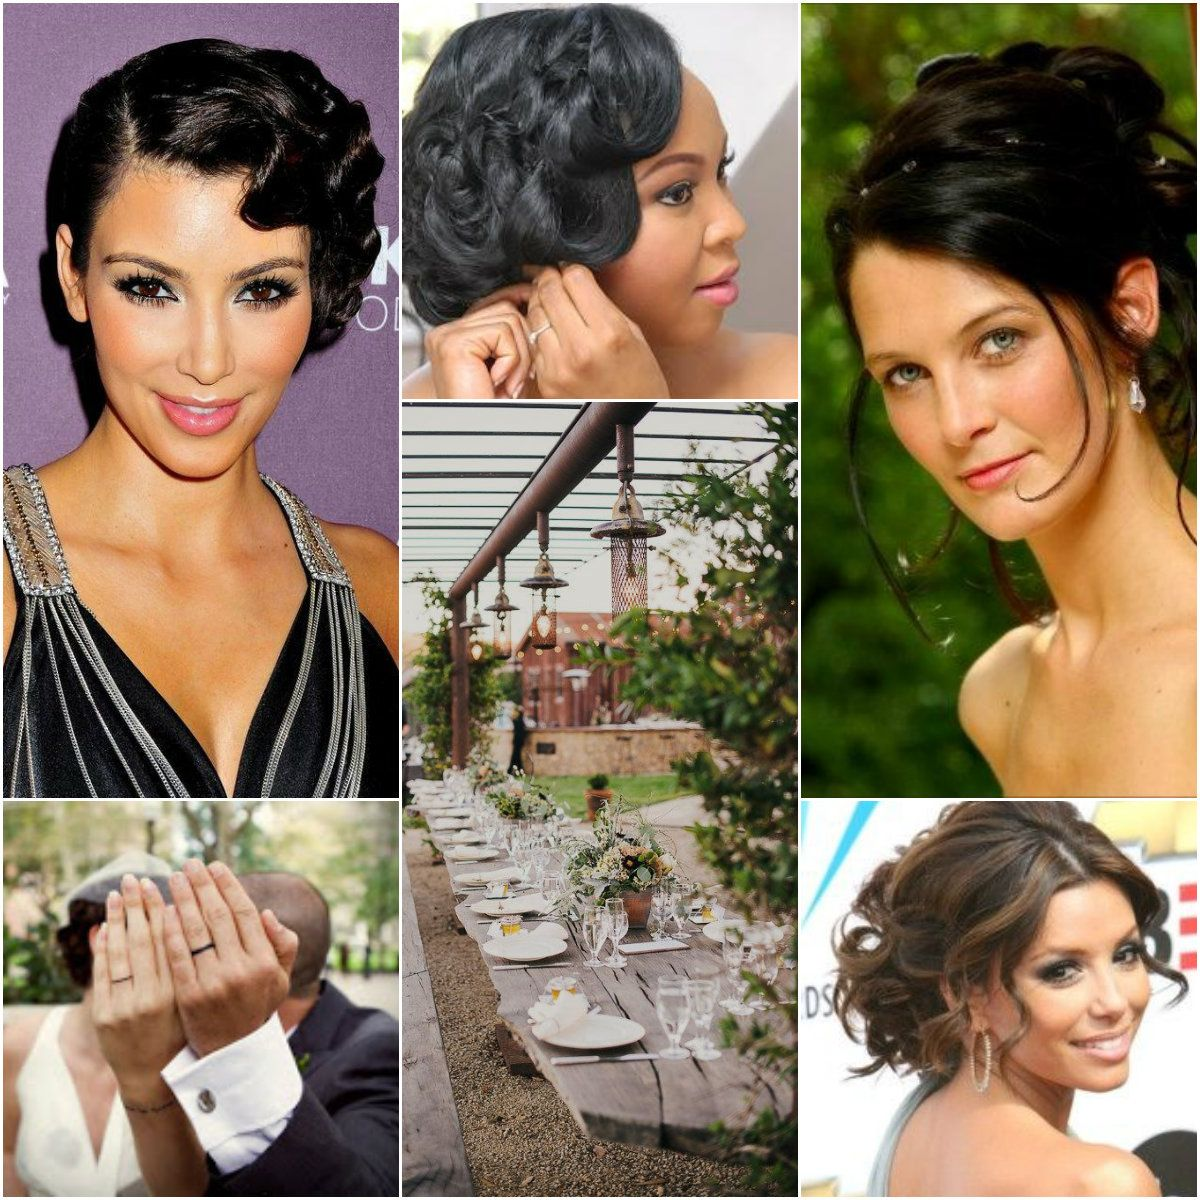 simple up do hair with twists for bridesmaid #updo #twists #rpgshow